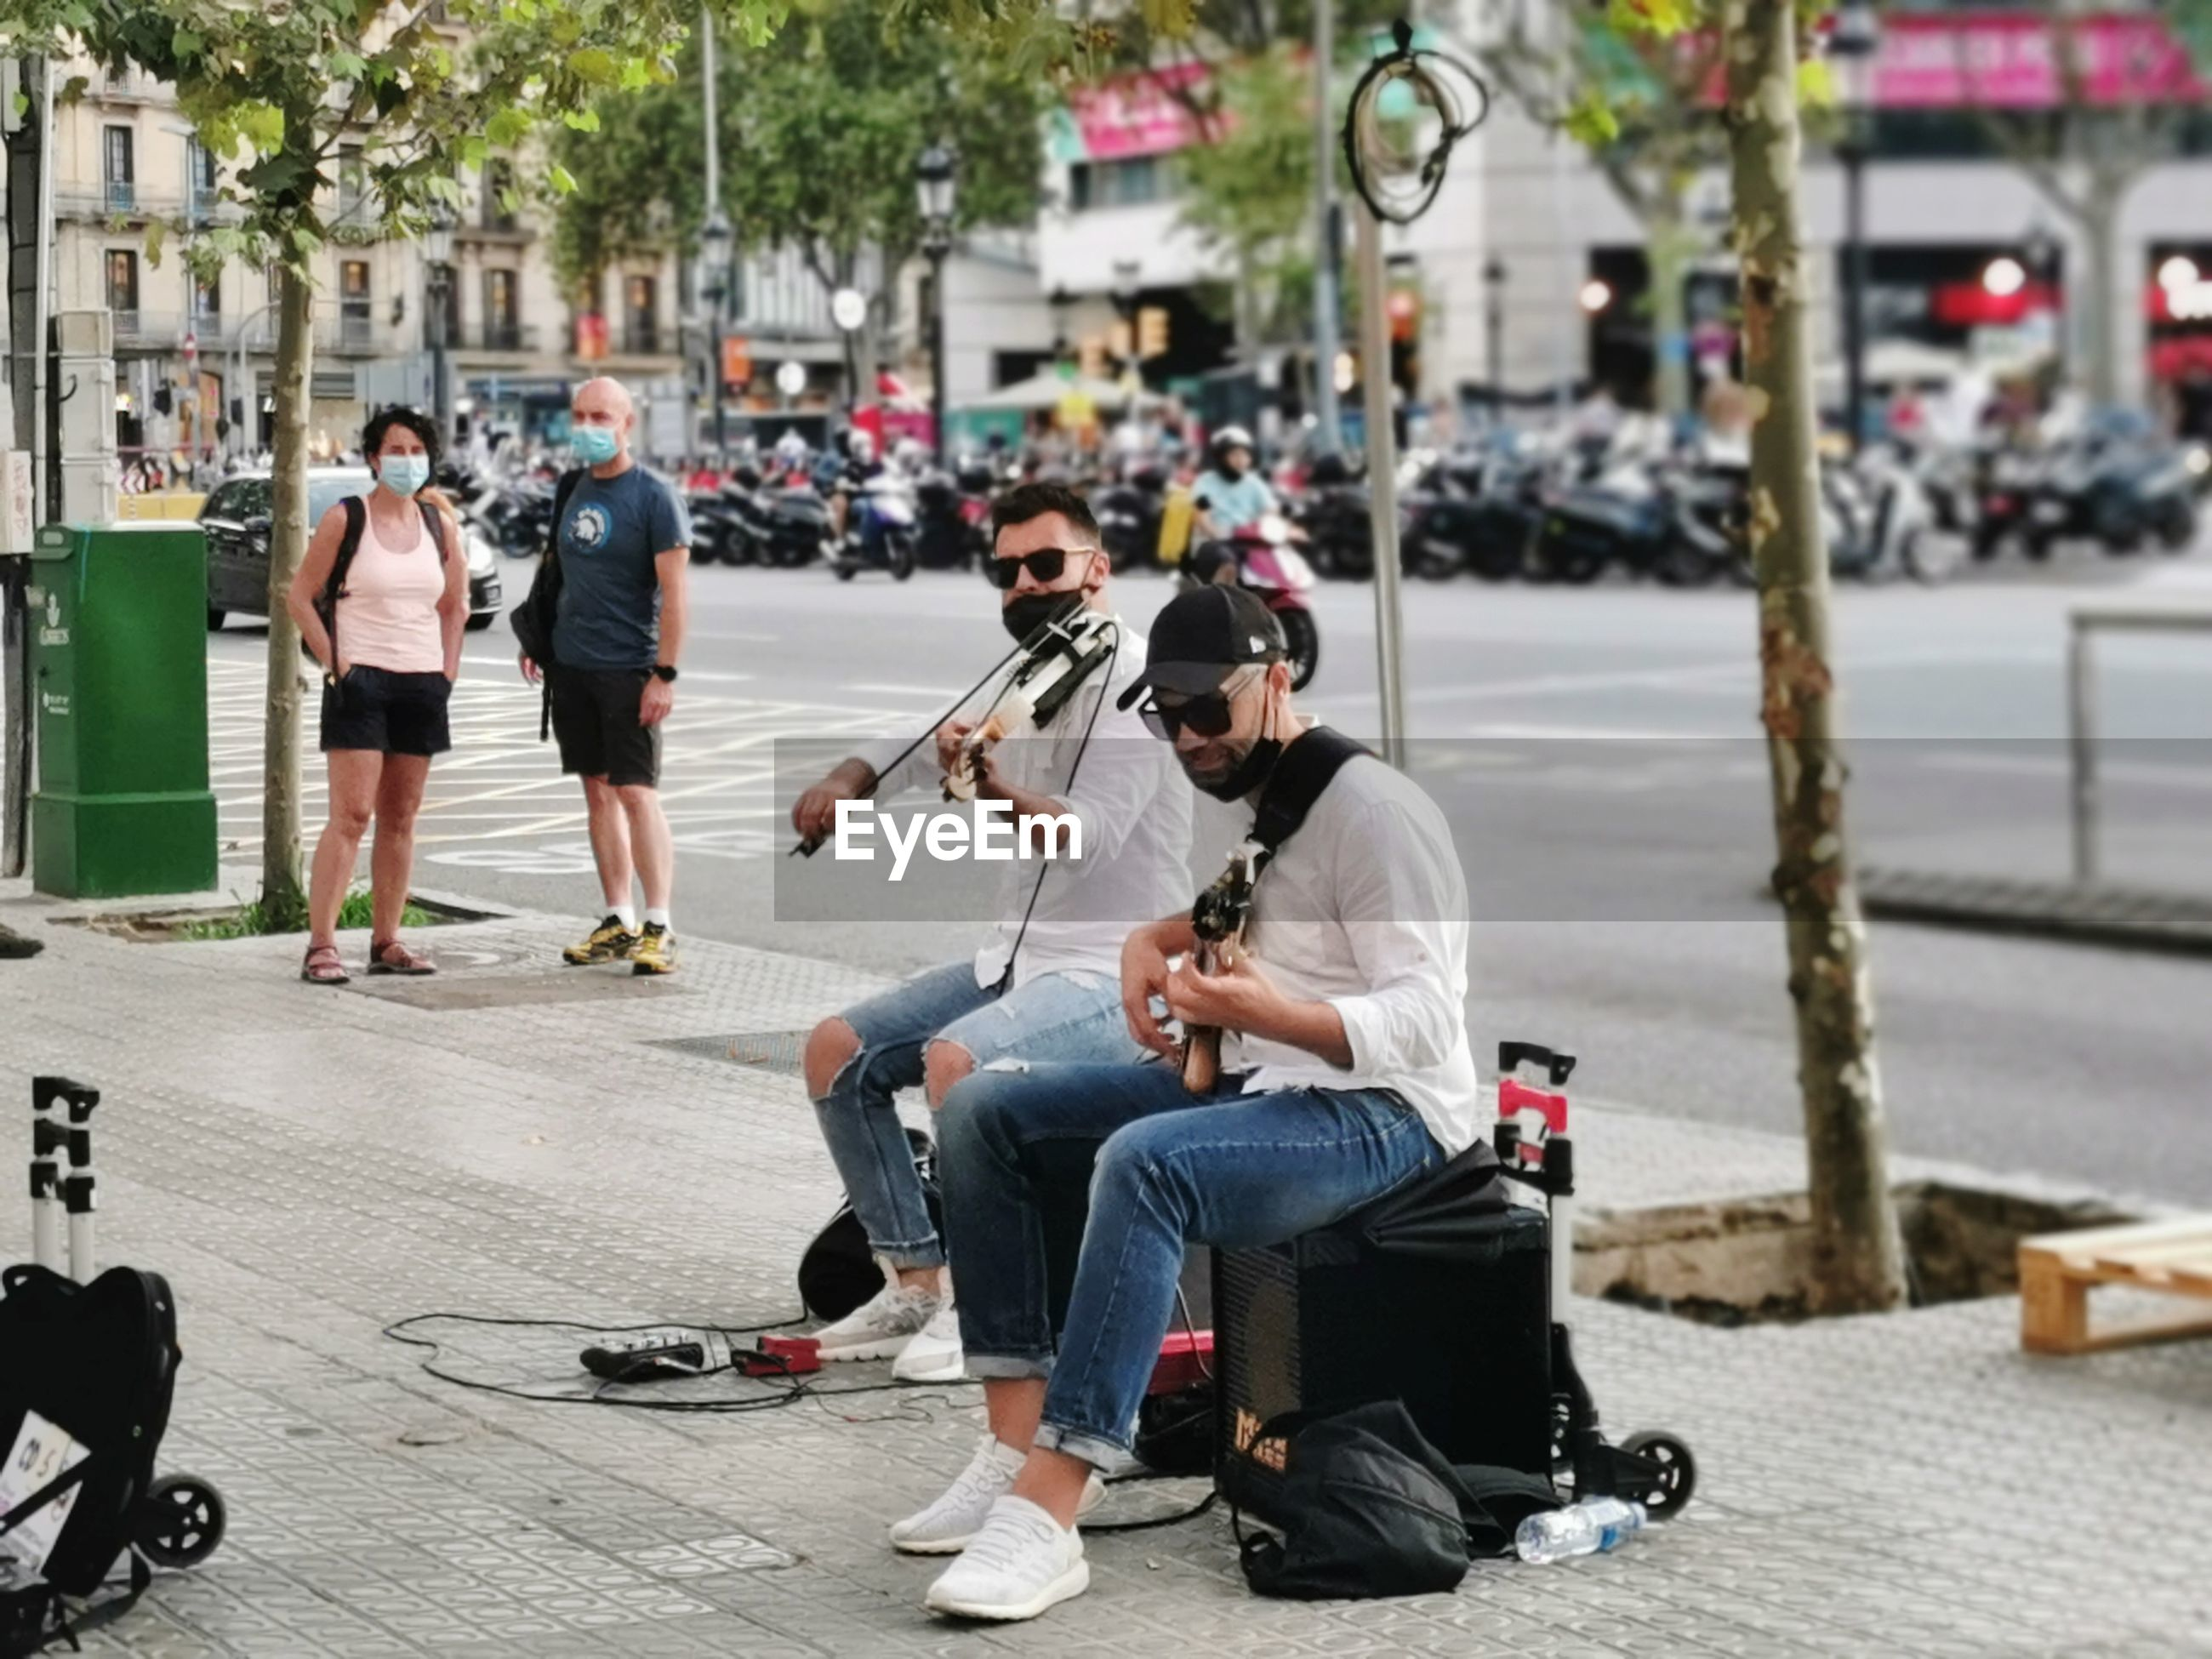 PEOPLE SITTING ON ROAD AGAINST CITY